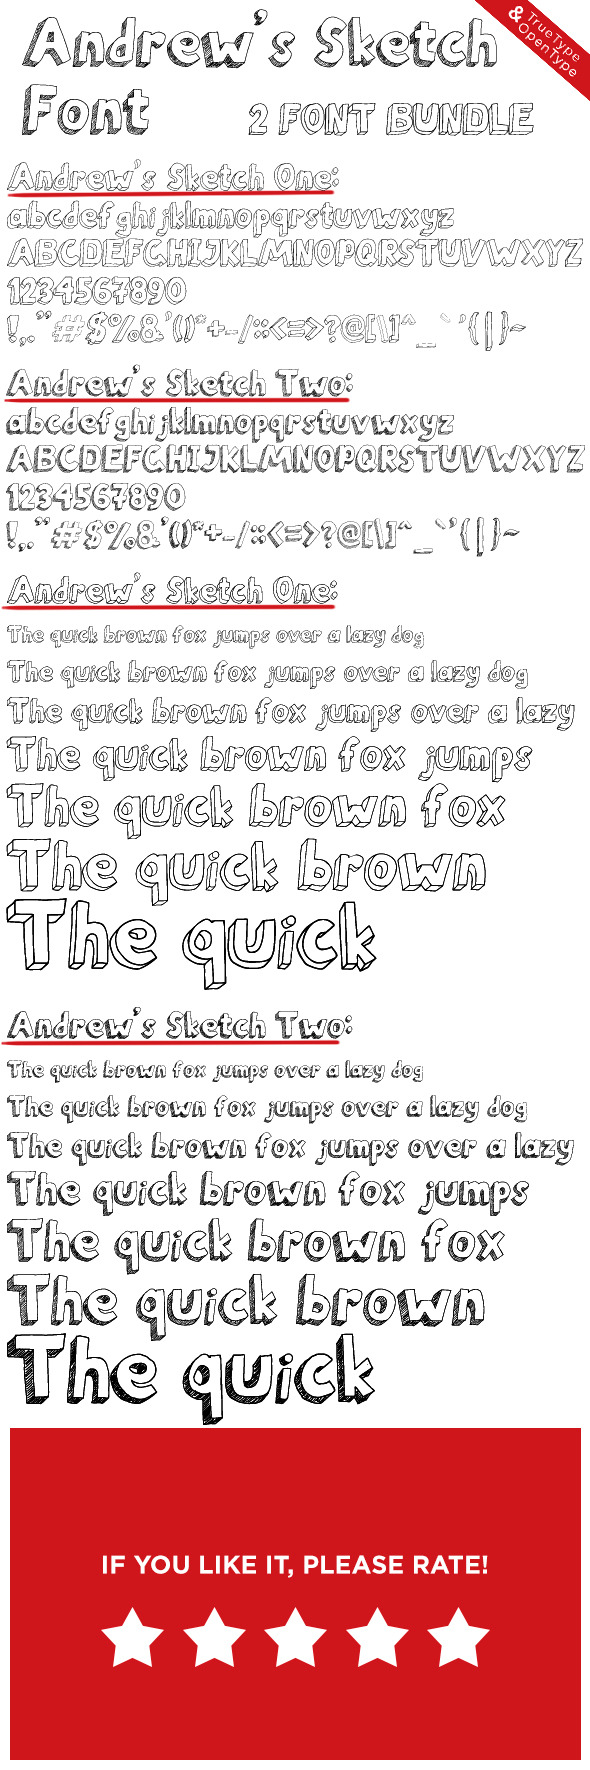 Andrew s Sketch Font One and Two